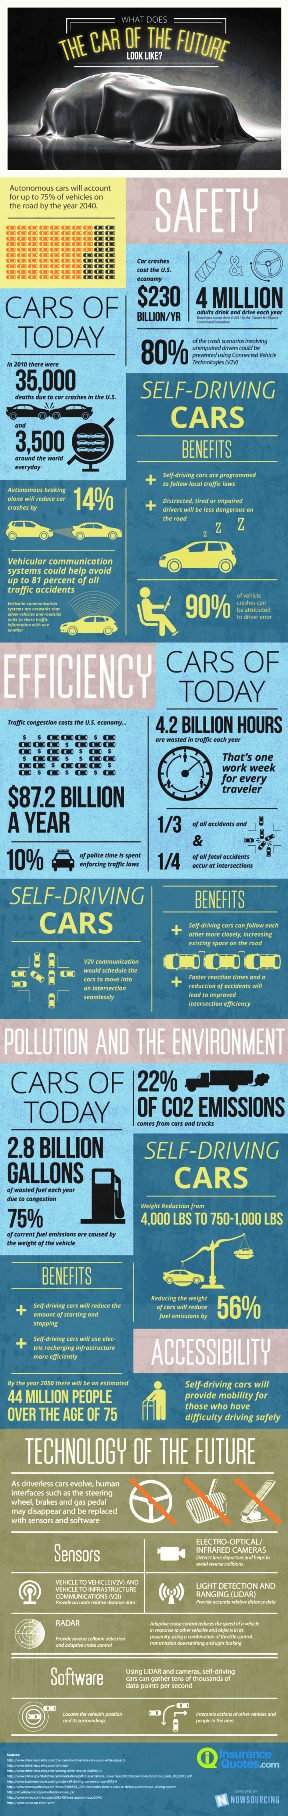 What does the car of the future look like #infographic